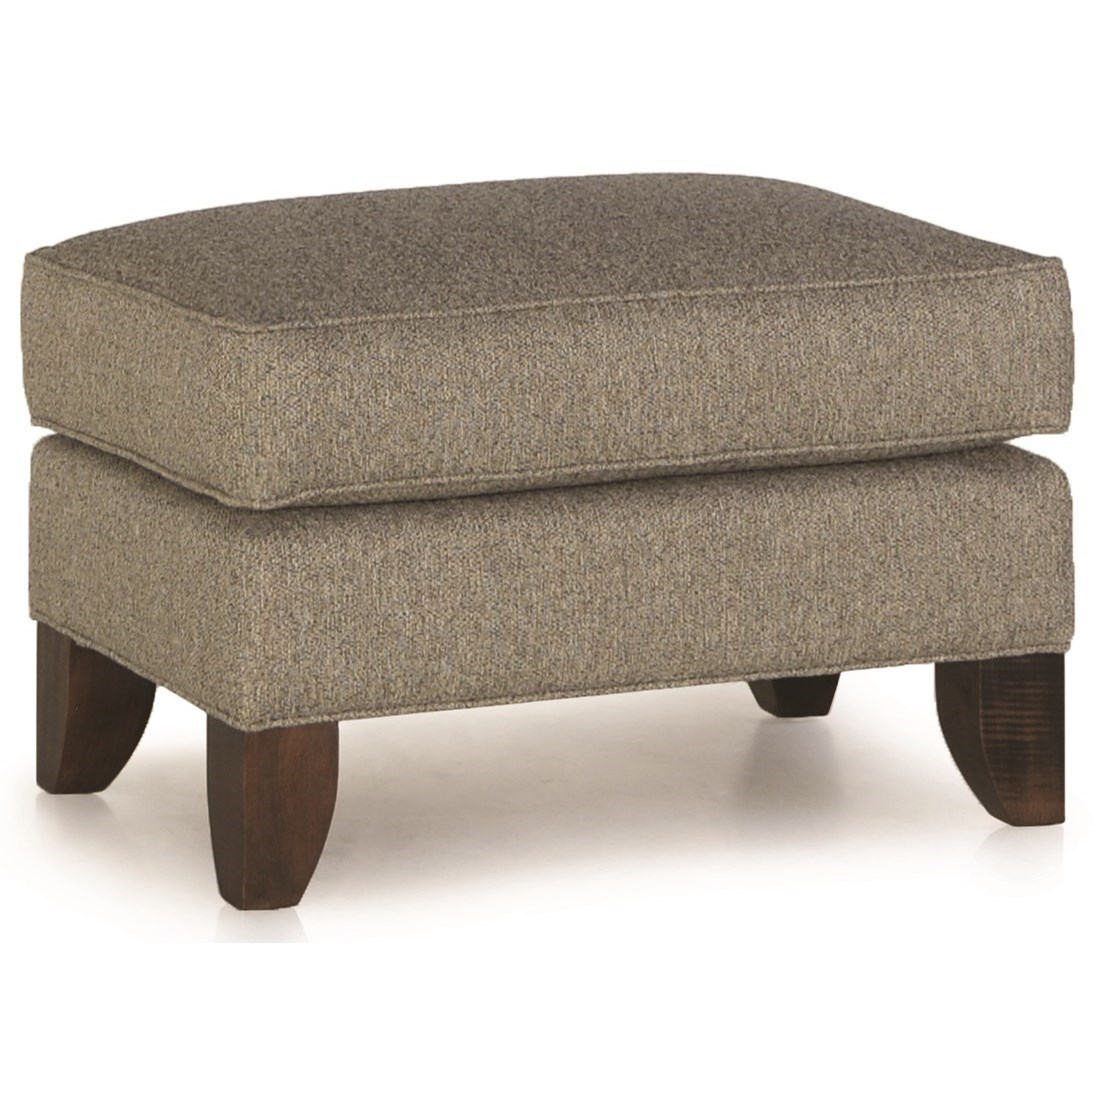 344 Ottoman by Smith Brothers at Rooms for Less